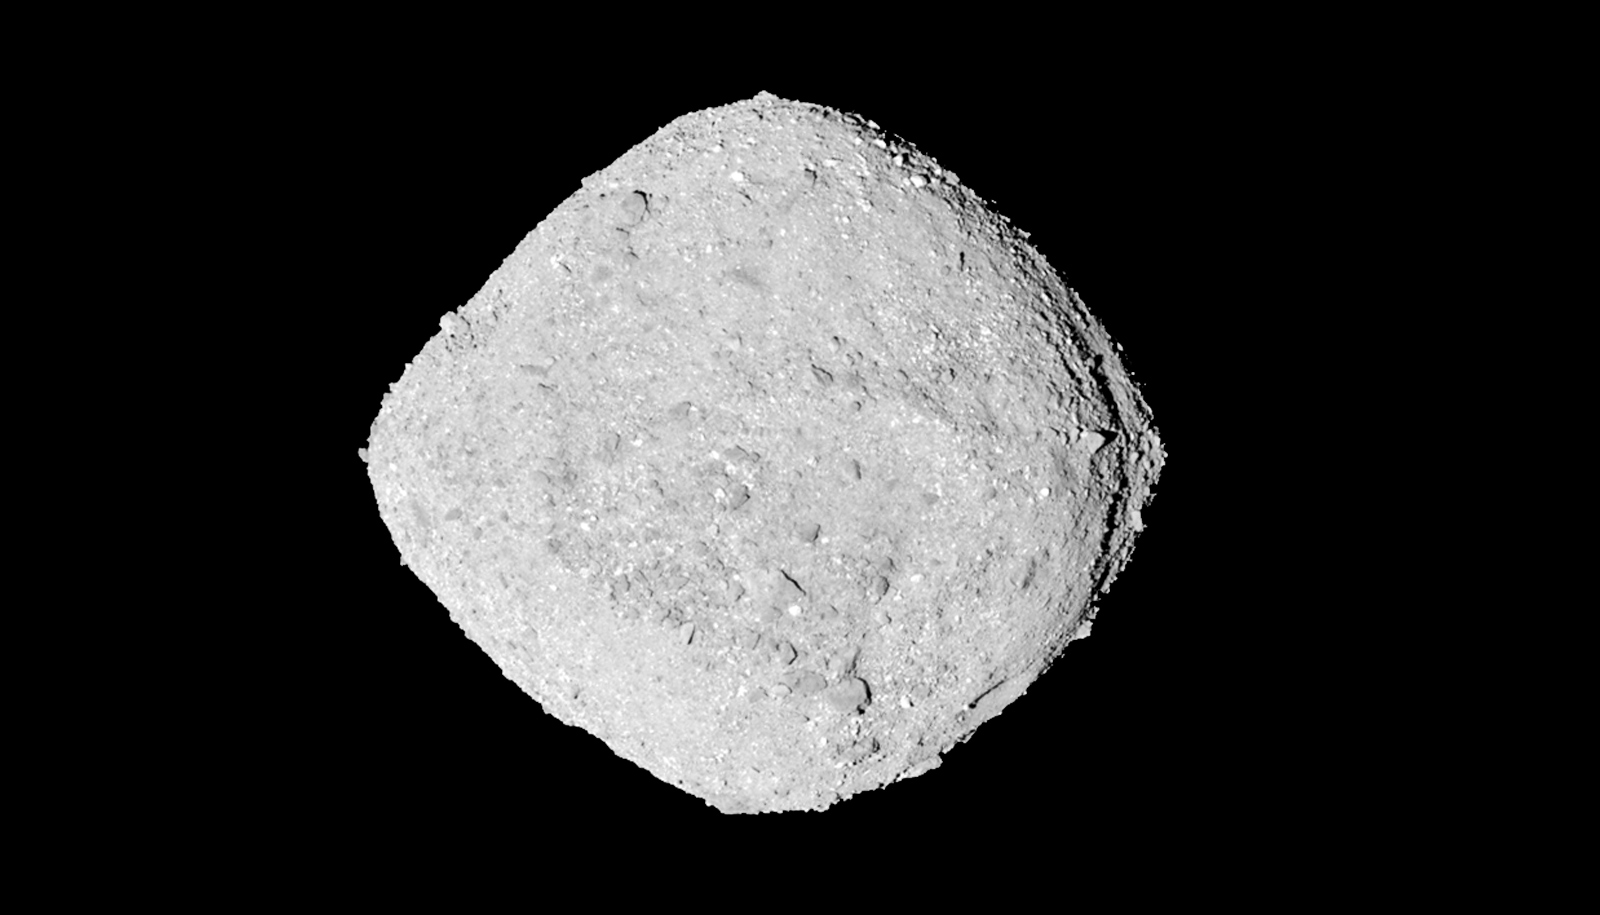 Grab a bit of asteroid Bennu? Not so fast